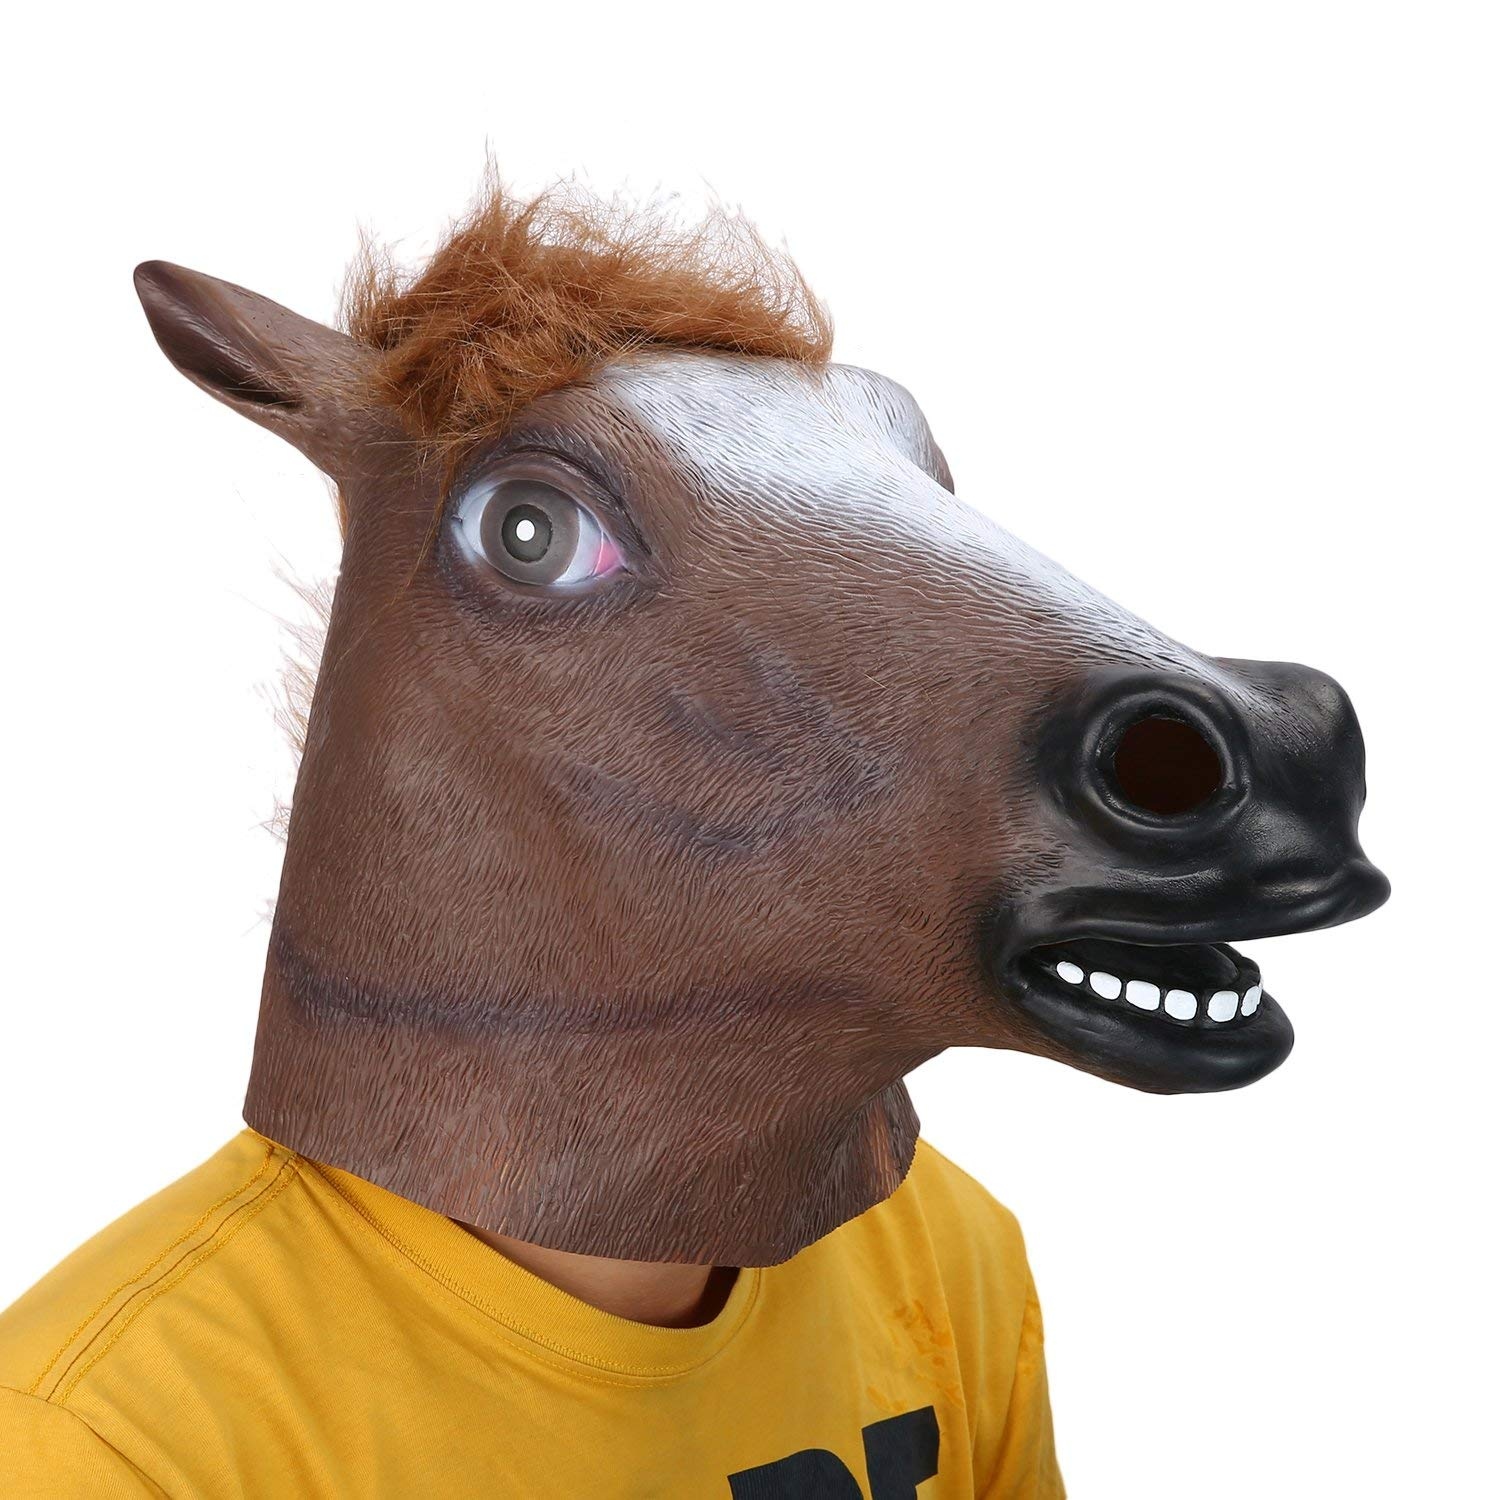 horse-mask-photo-booth-prop.jpg